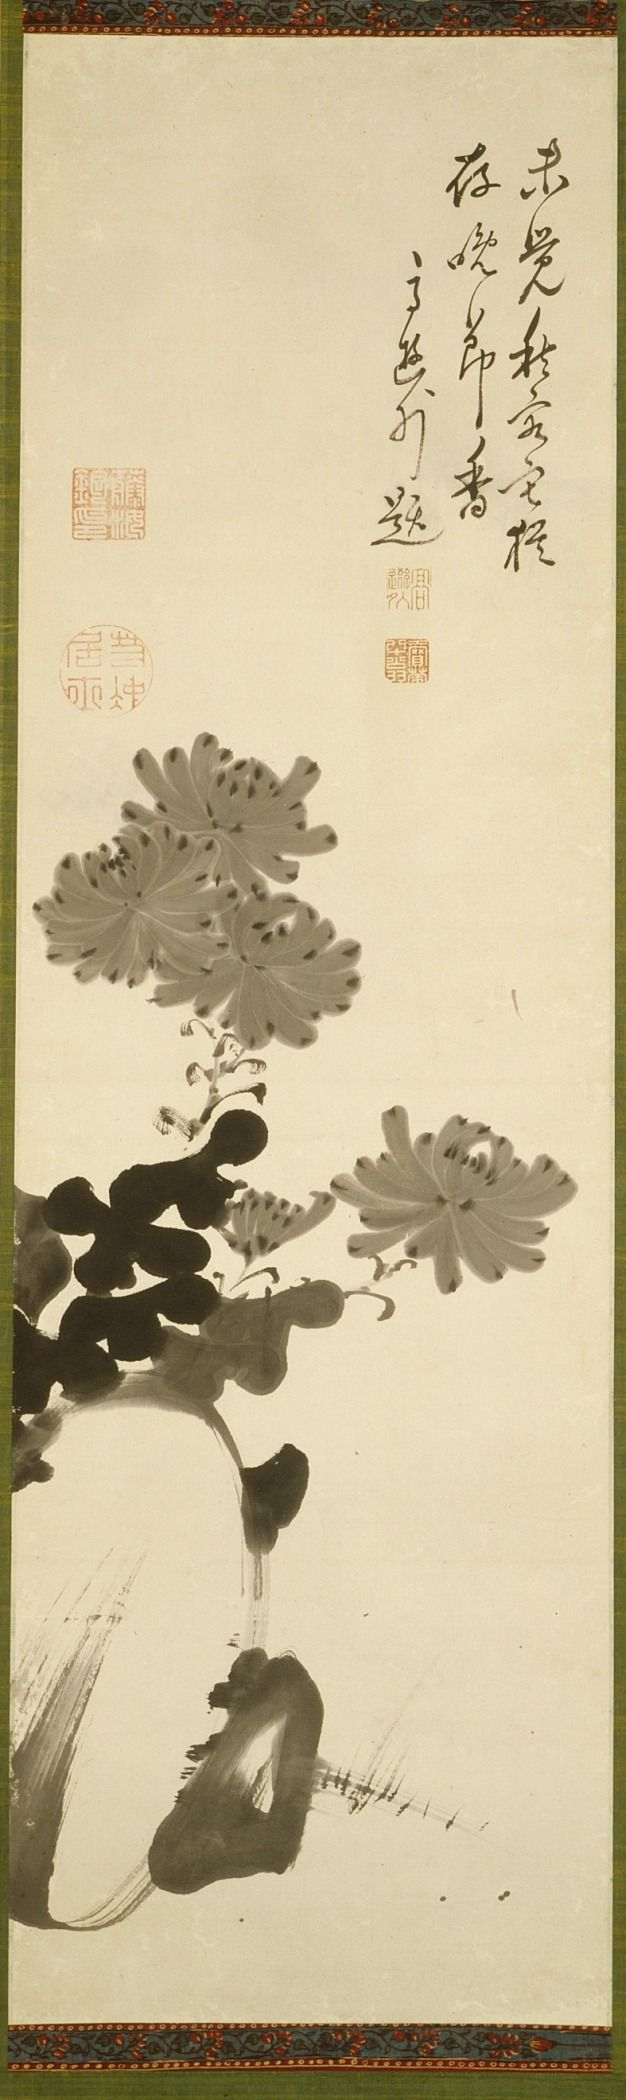 Itō Jakuchū. Chrysanthemums and Rock. Japan, late 18th century. Hanging scroll; ink on paper. LACMA